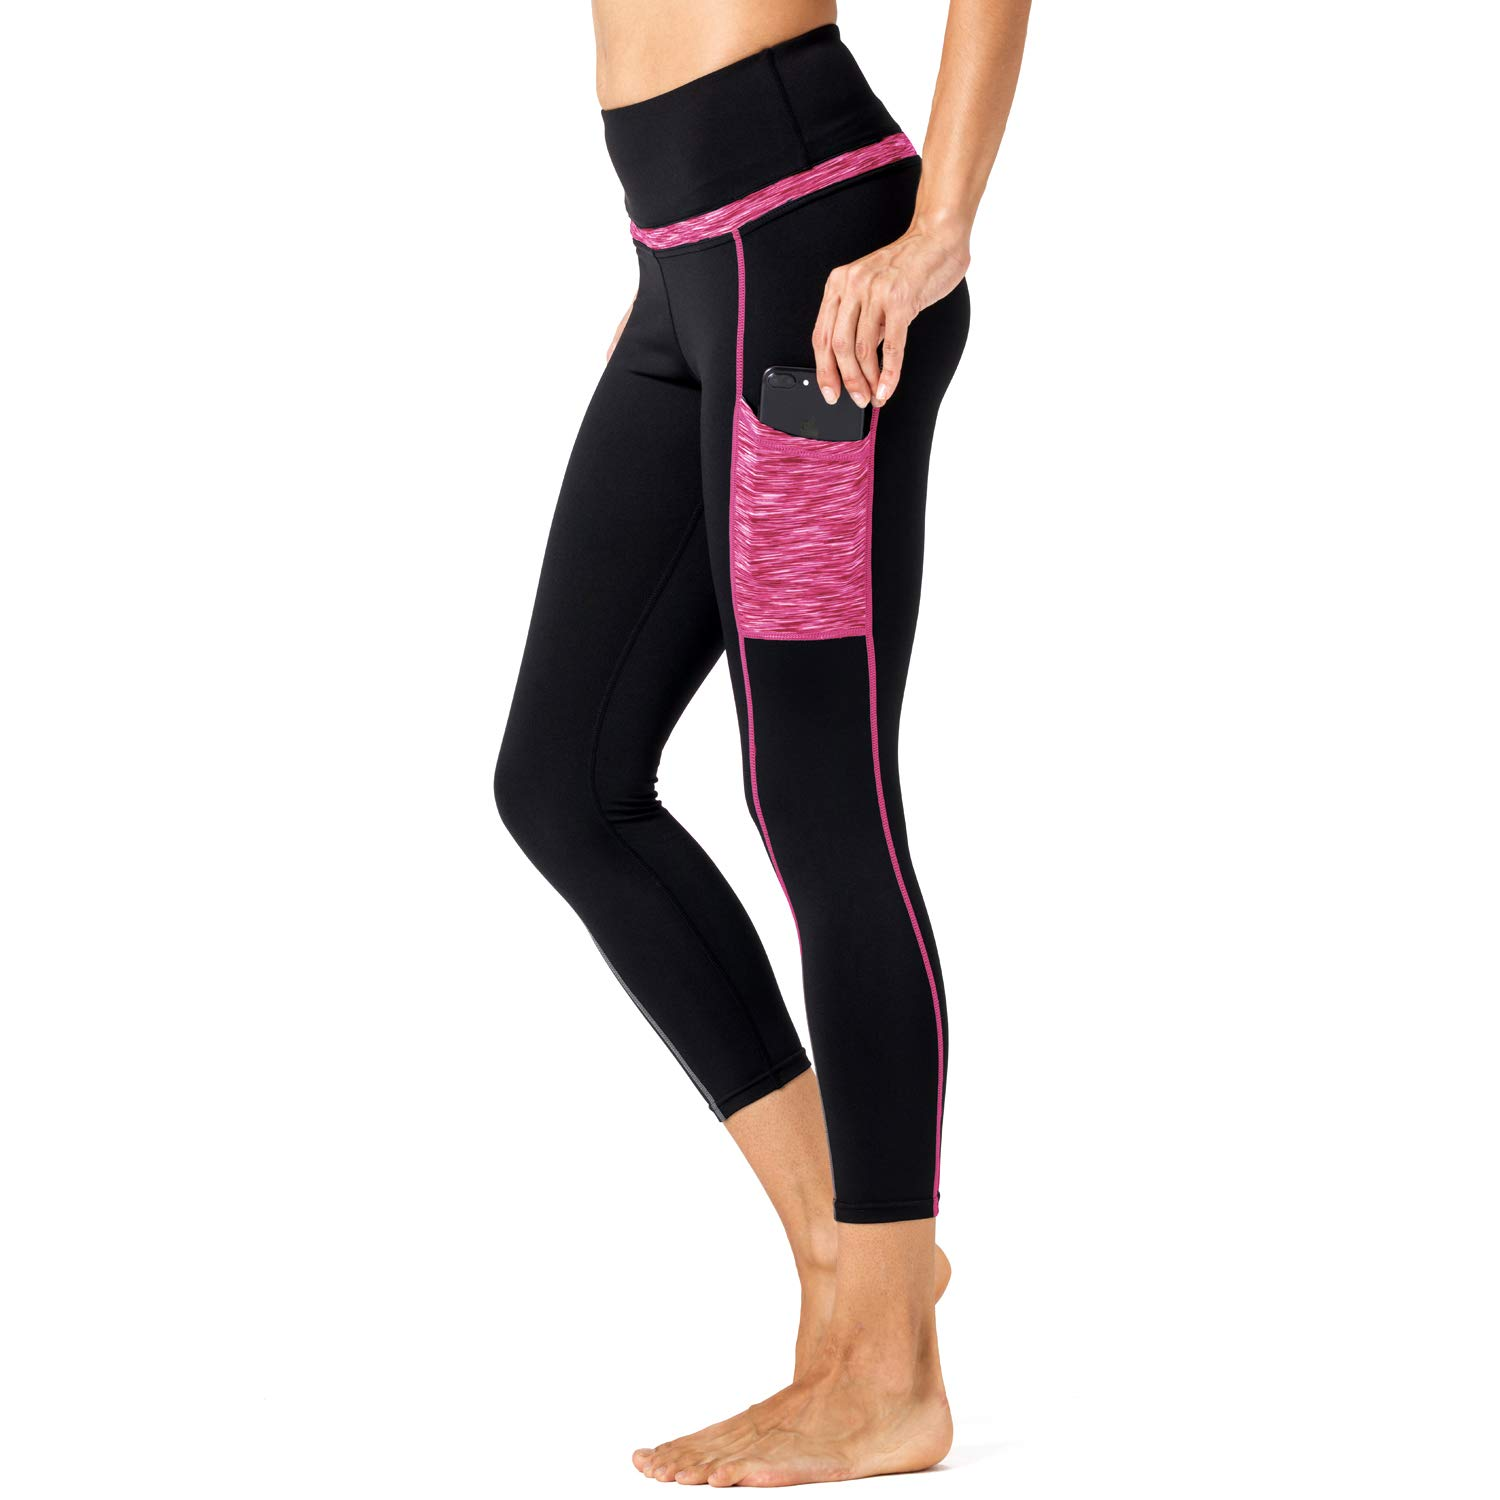 8 Cc201803pink Black Tesuwel Women Yoga Pants with Pockets High Waist Tummy Control Running Workout Pants Leggings